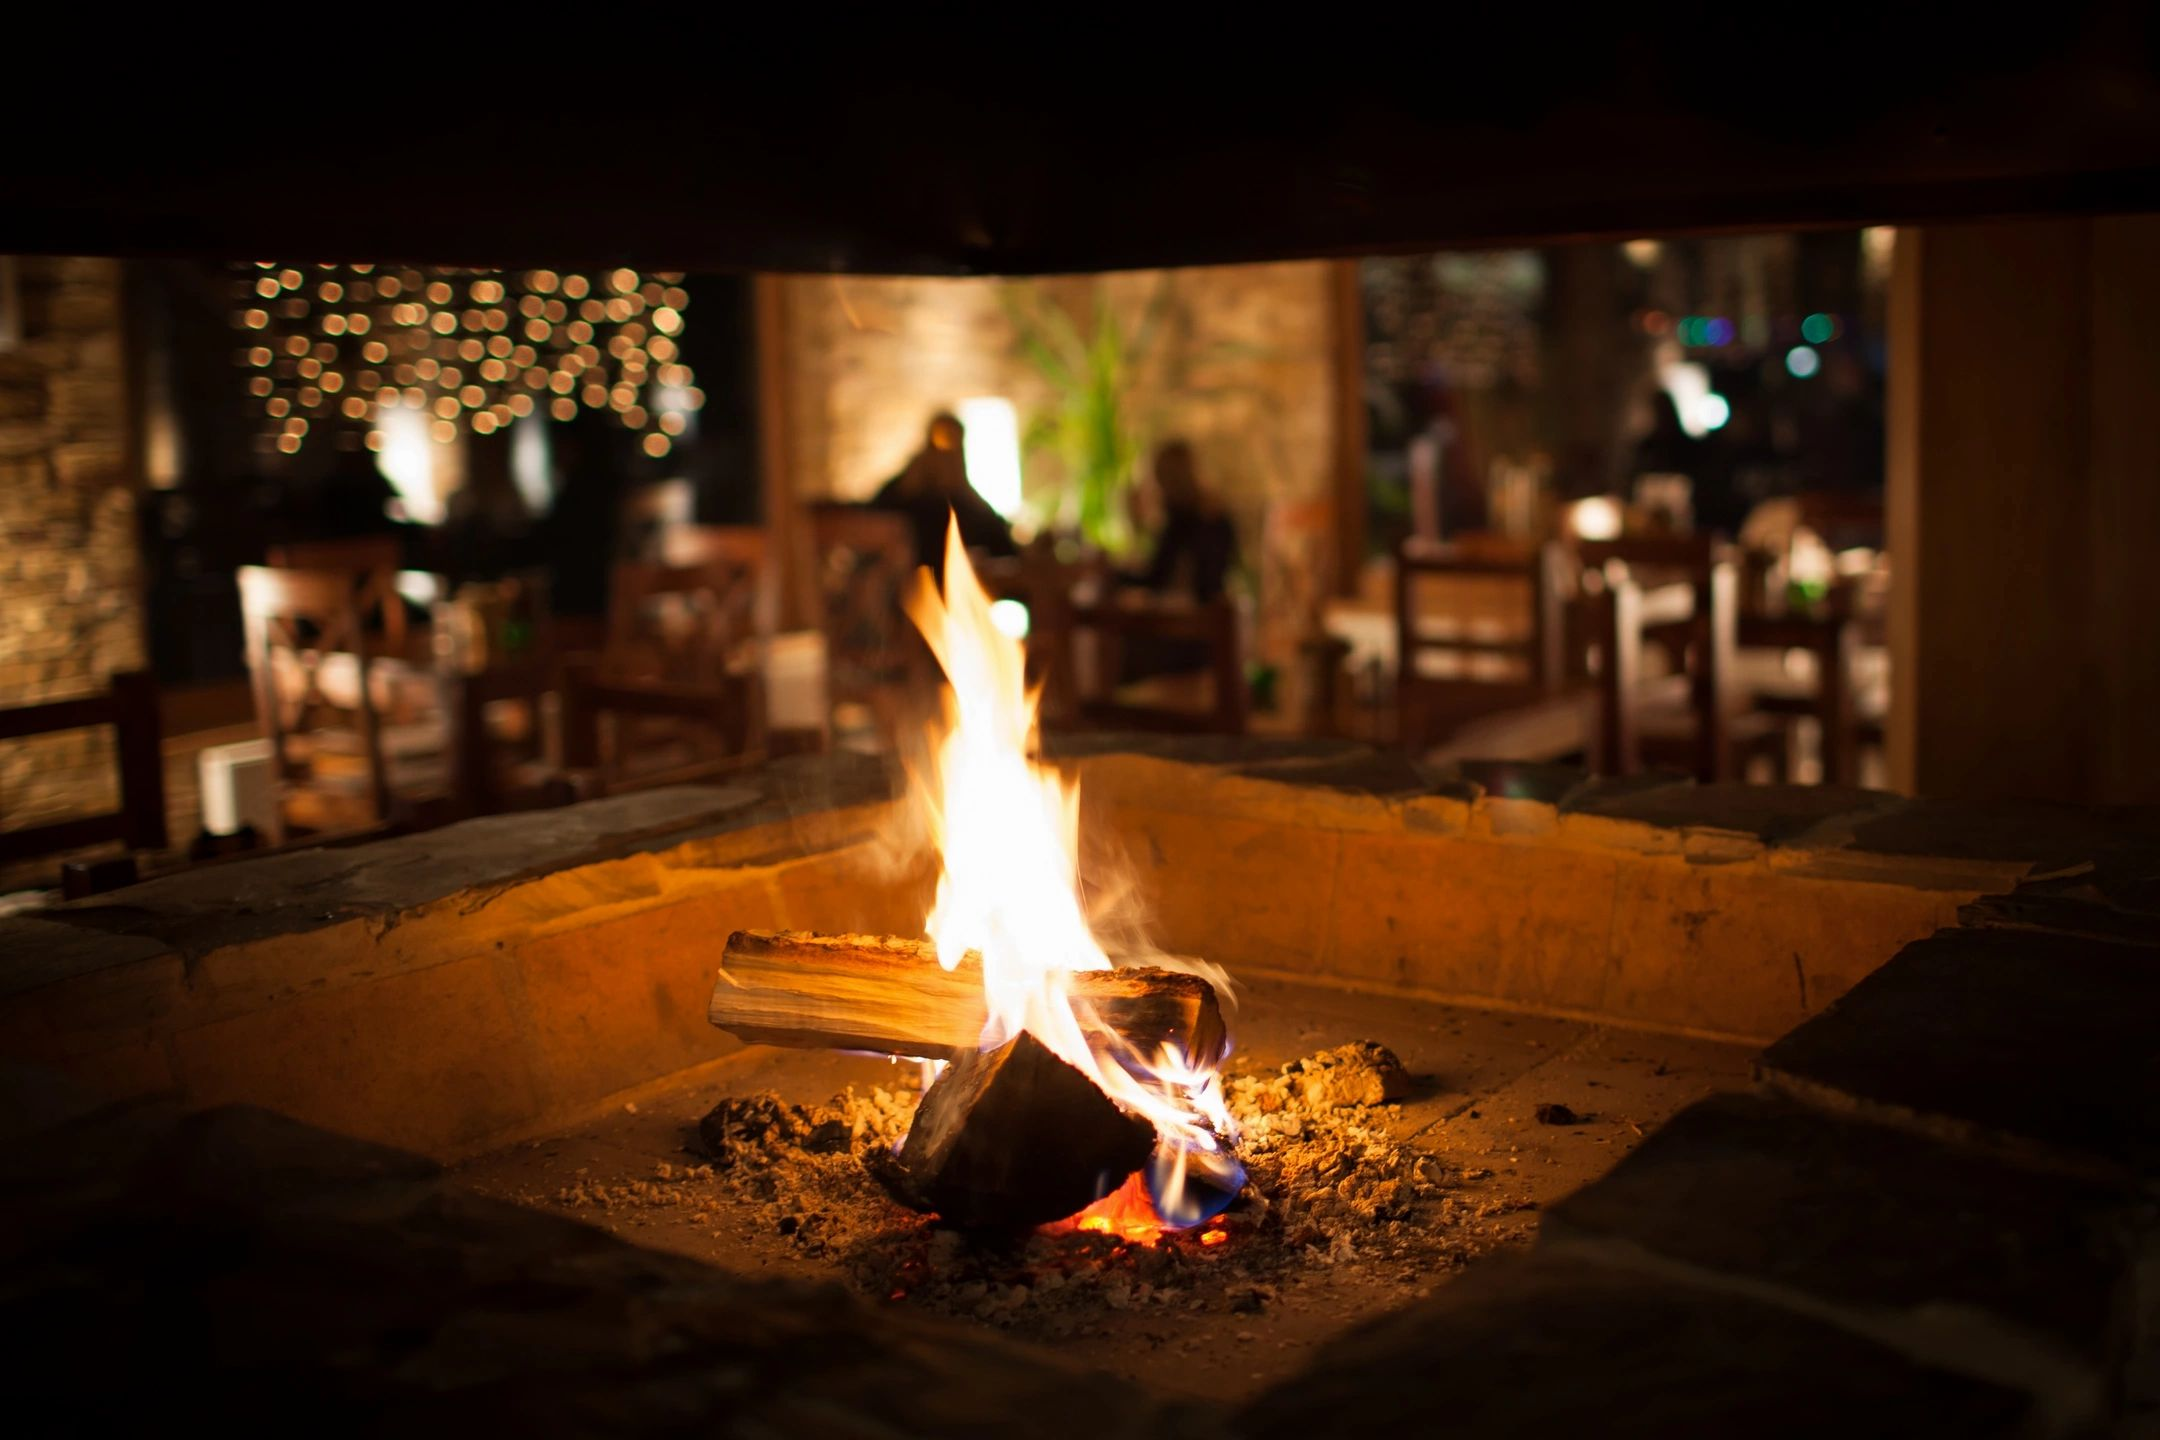 Outdoor Dining with Heaters for Date Nights during Covid